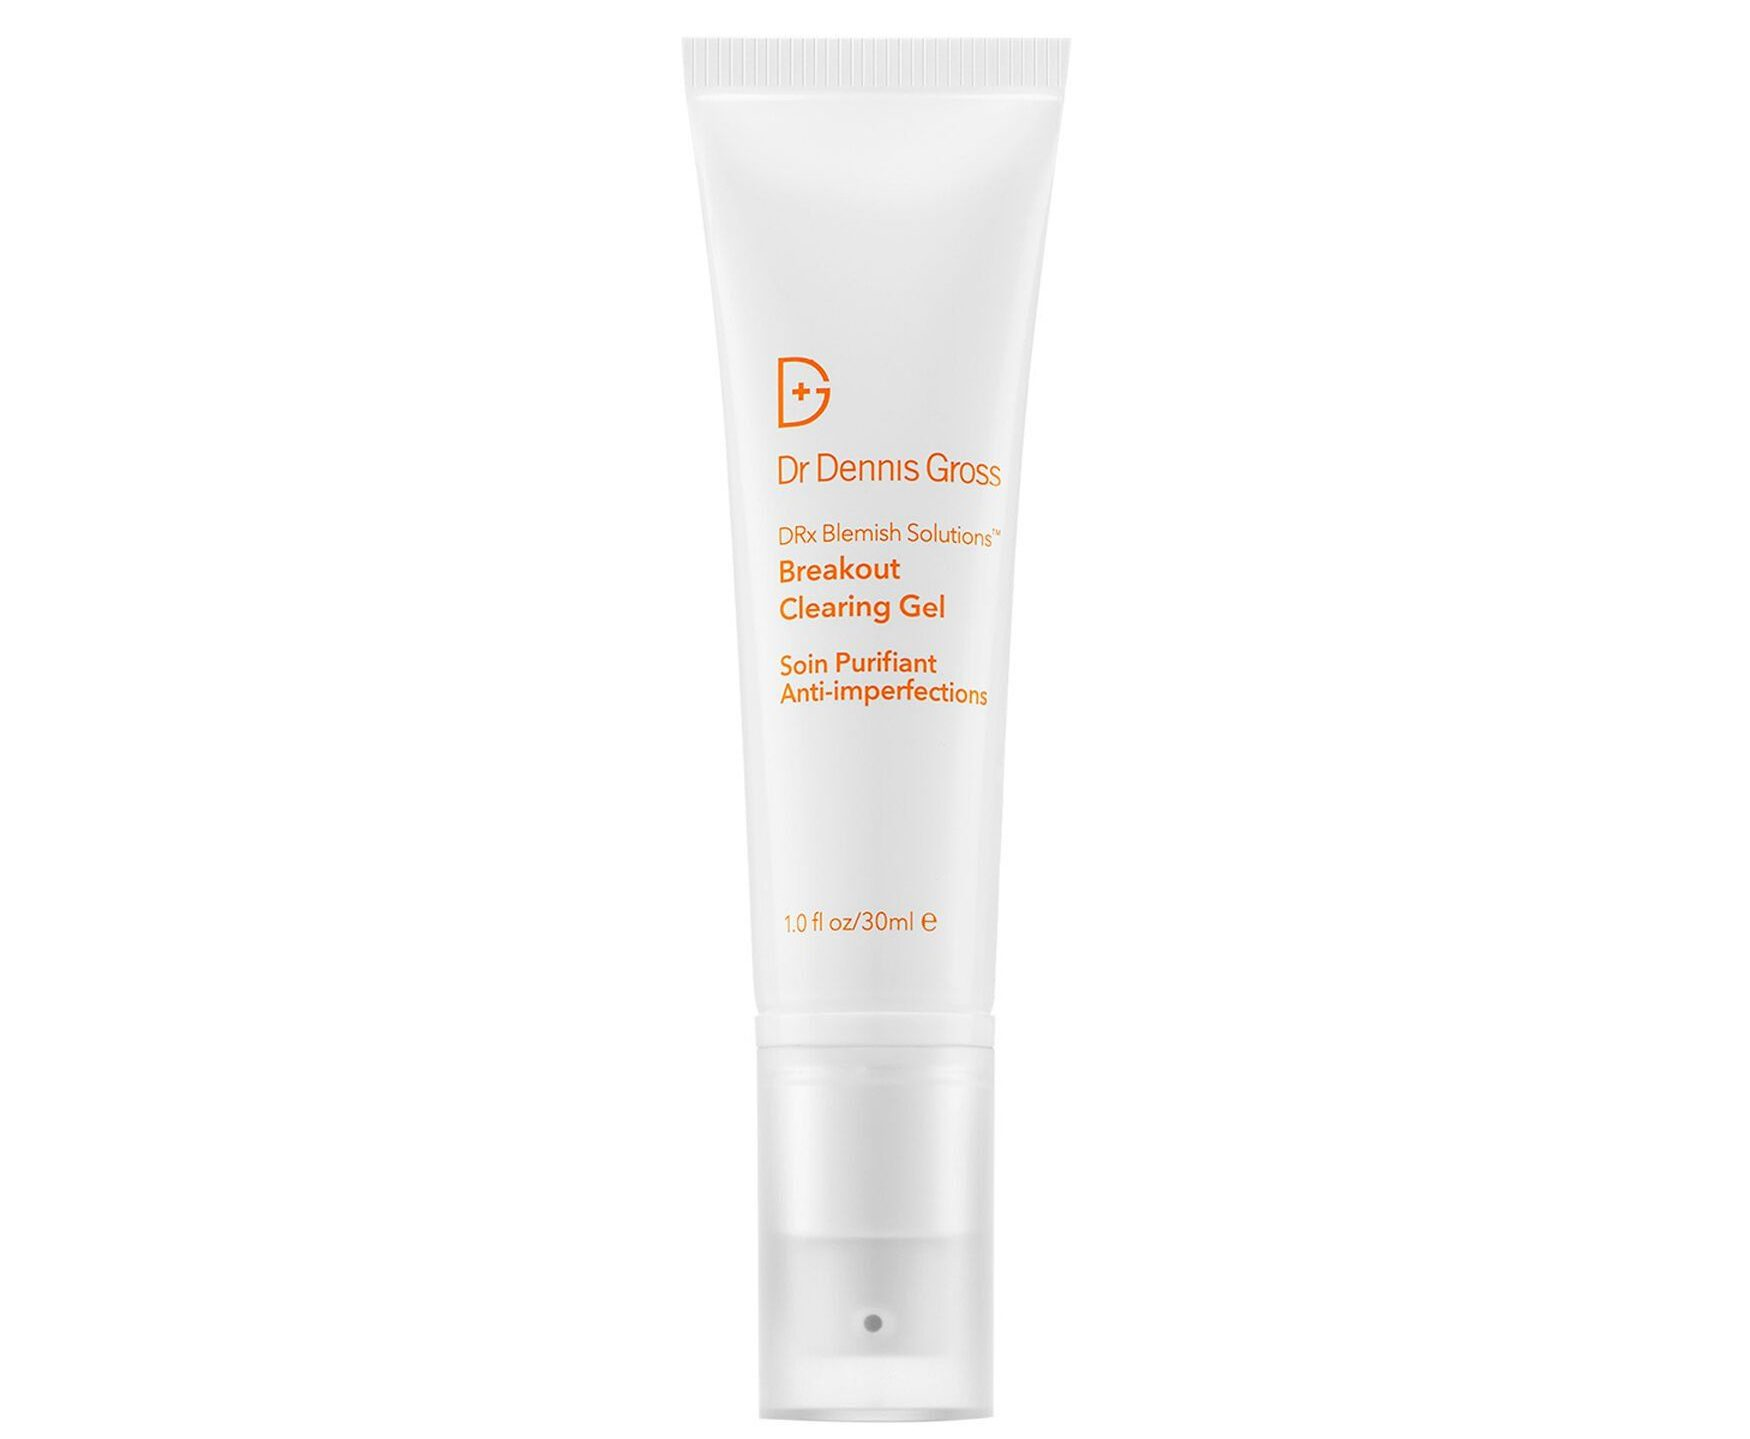 My Celebrity Life – Dr Dennis Gross Skincare Breakout Clearing Gel